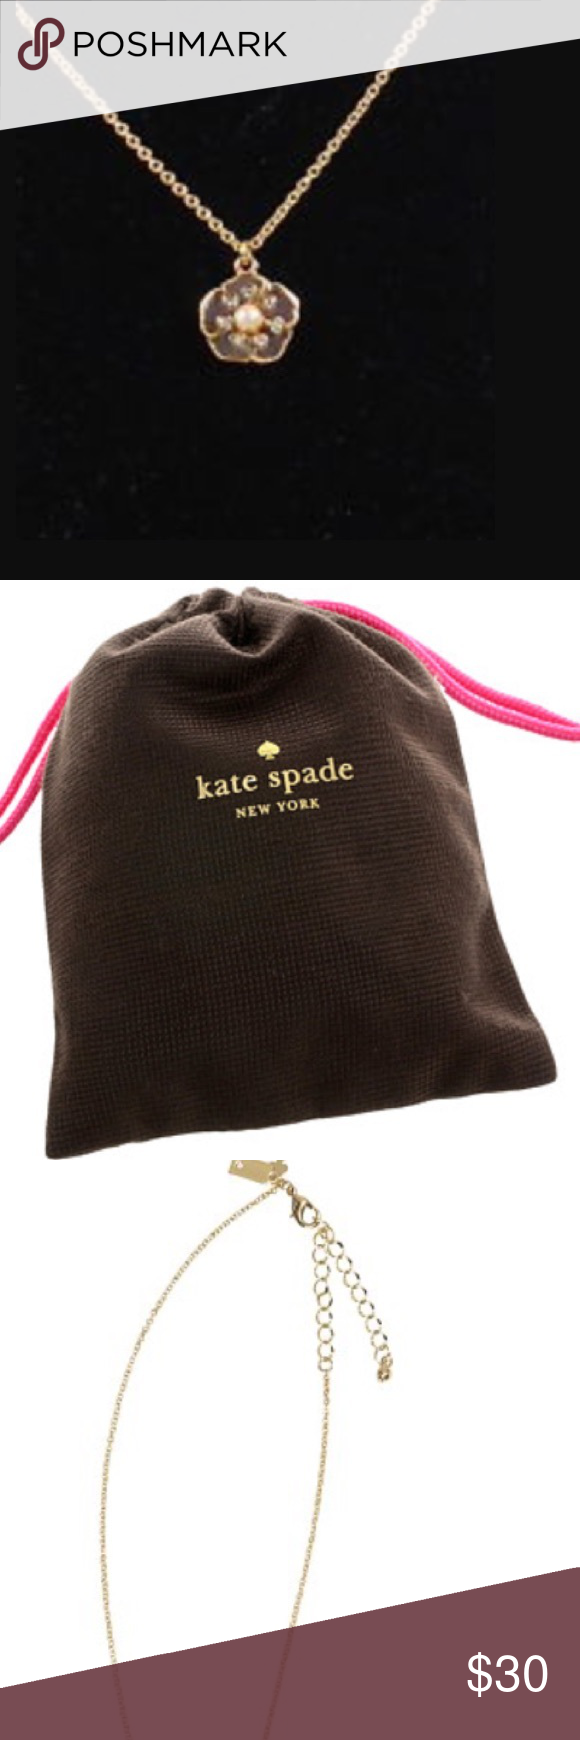 Kate Spade sunset blossom necklace Brand new Kate spade necklace . Jewelry Necklaces